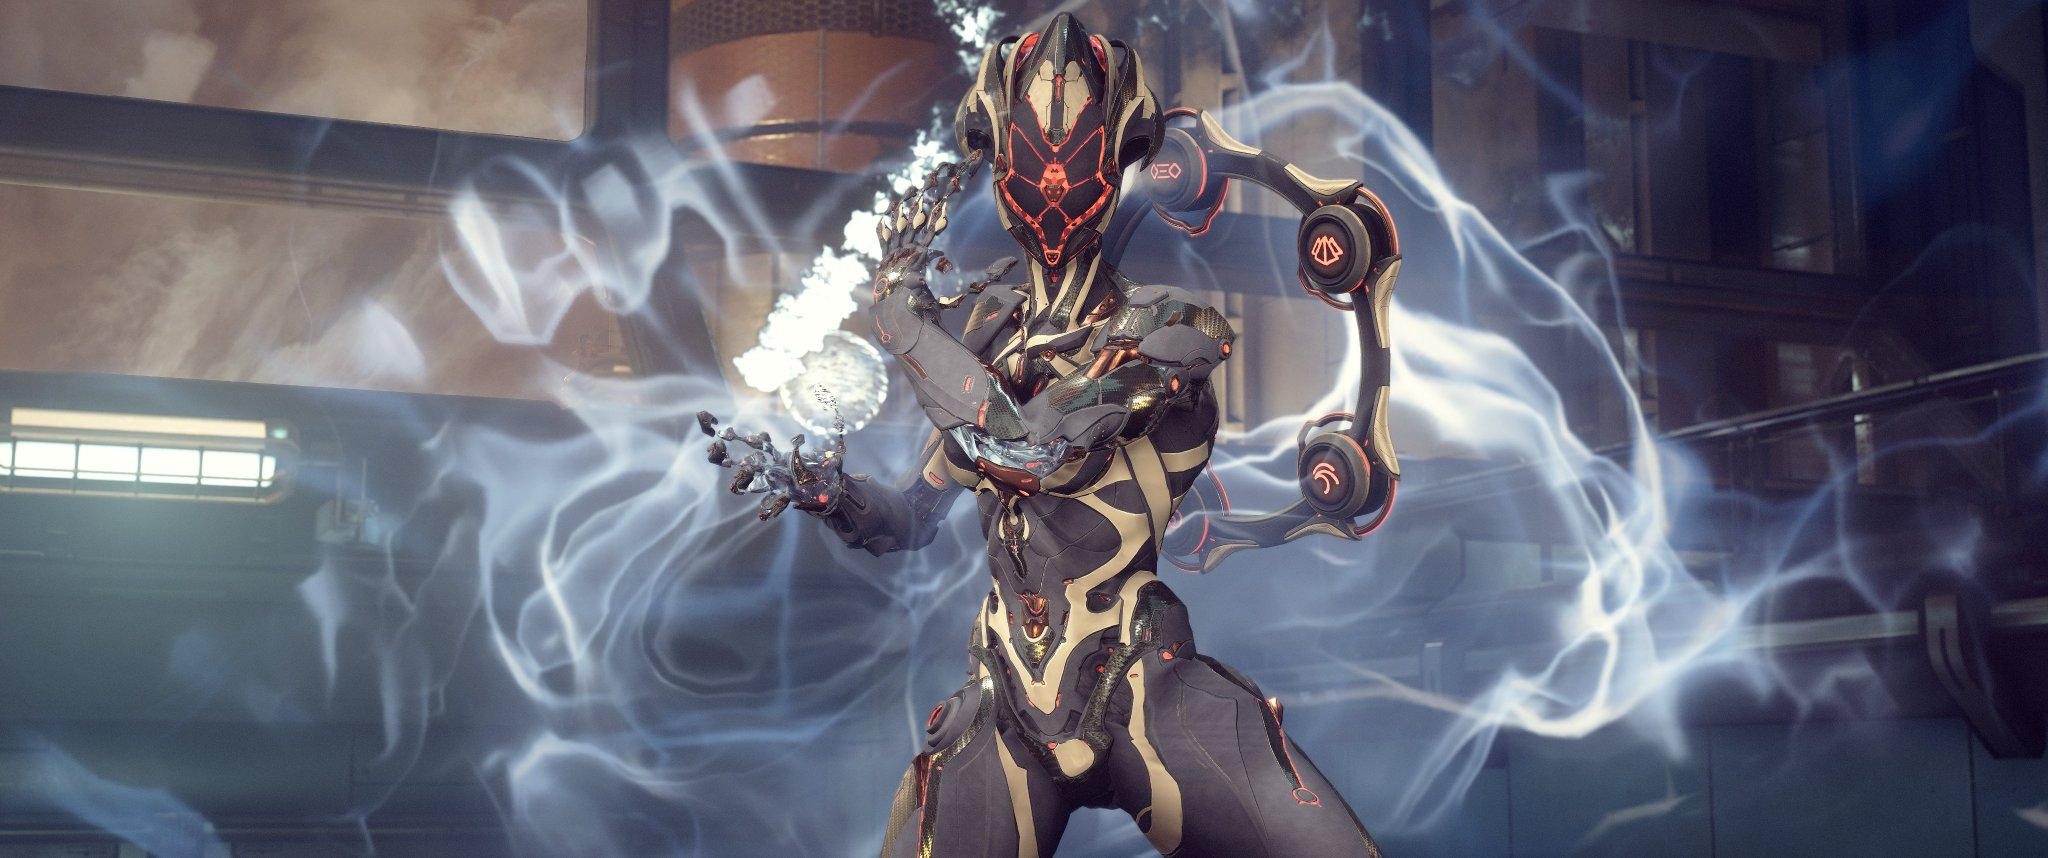 Volzien On Twitter Some Quick Nova Atomica Shots Nova prime is the primed variant of the nova warframe featuring more powerful stats: nova atomica shots